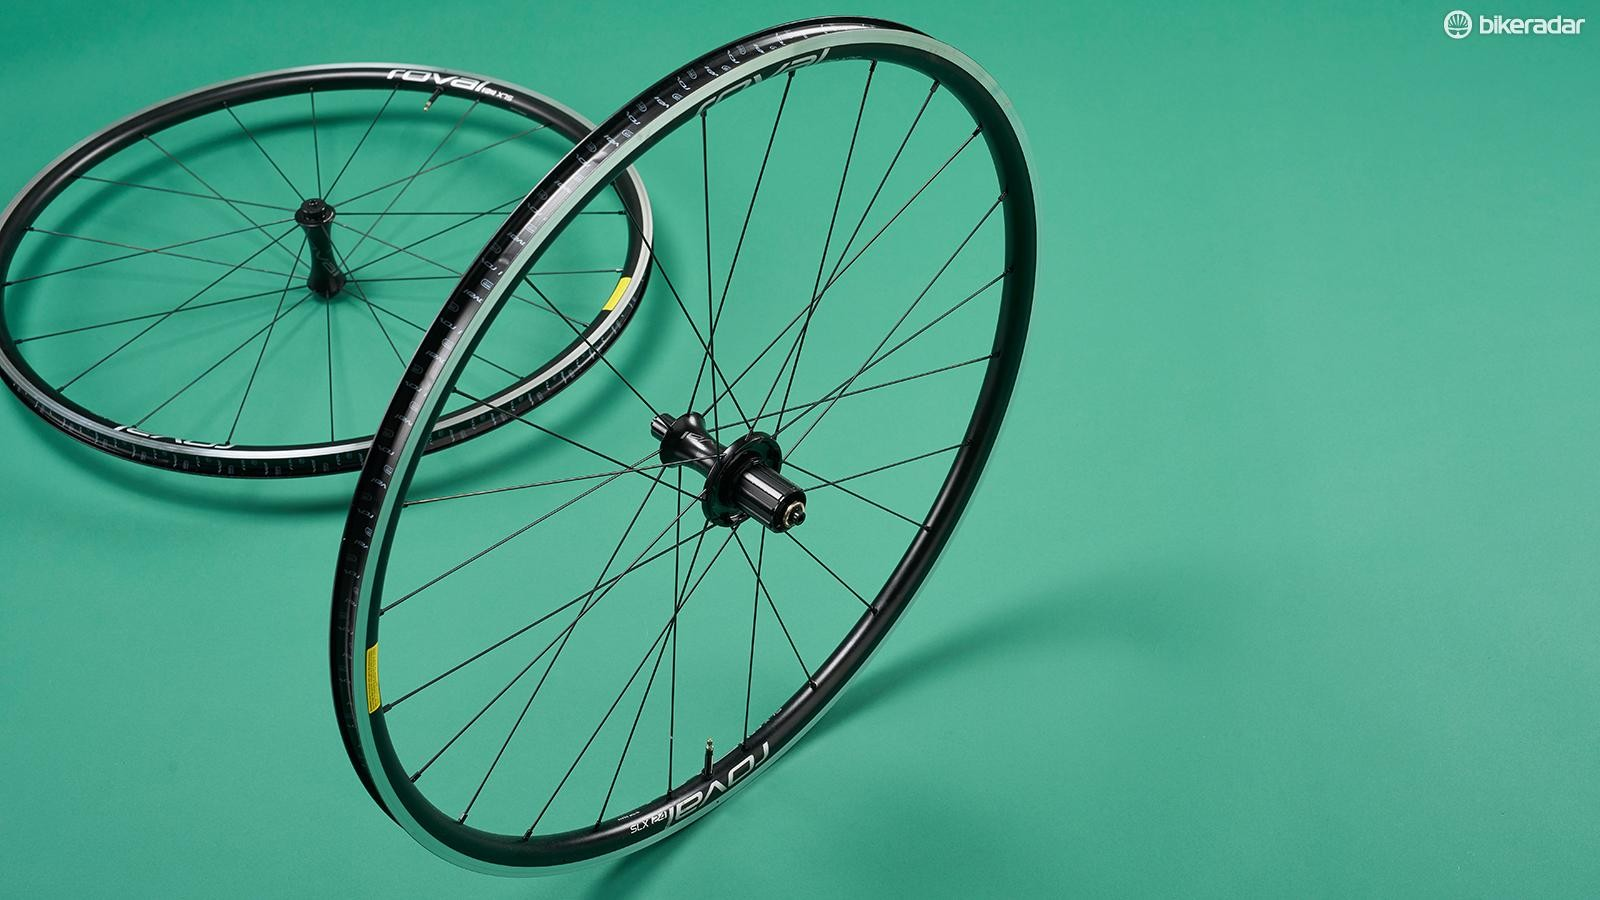 Specialized's Roval wheels are consistently impressing us at the moment